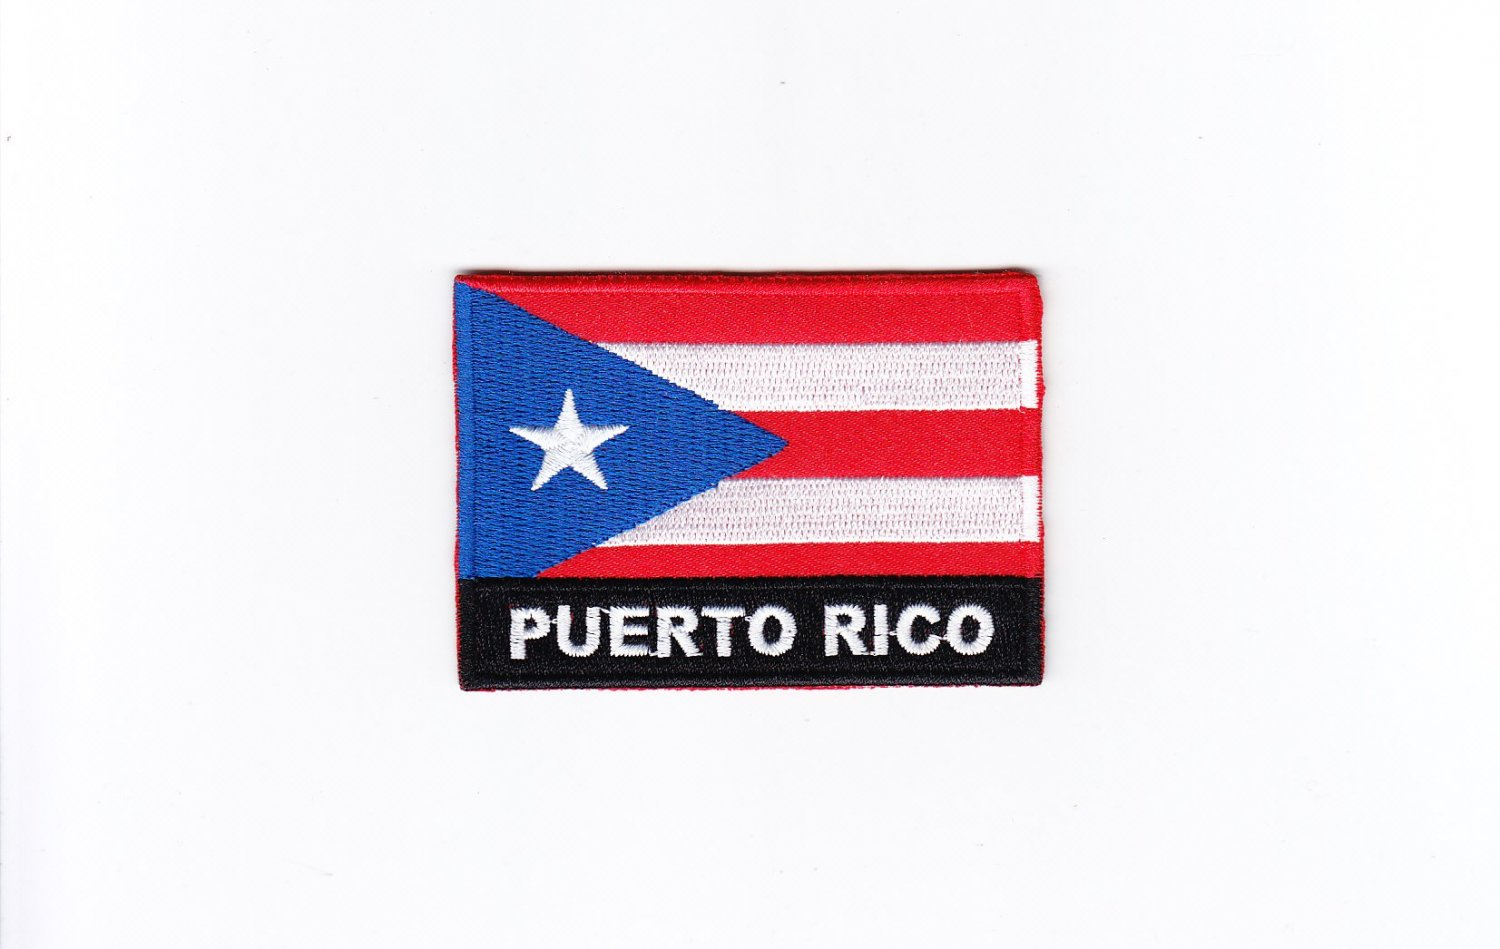 Purto Rico MultiColor Country Flag Logo Embroidered Iron On Backing Heat Seal Patch